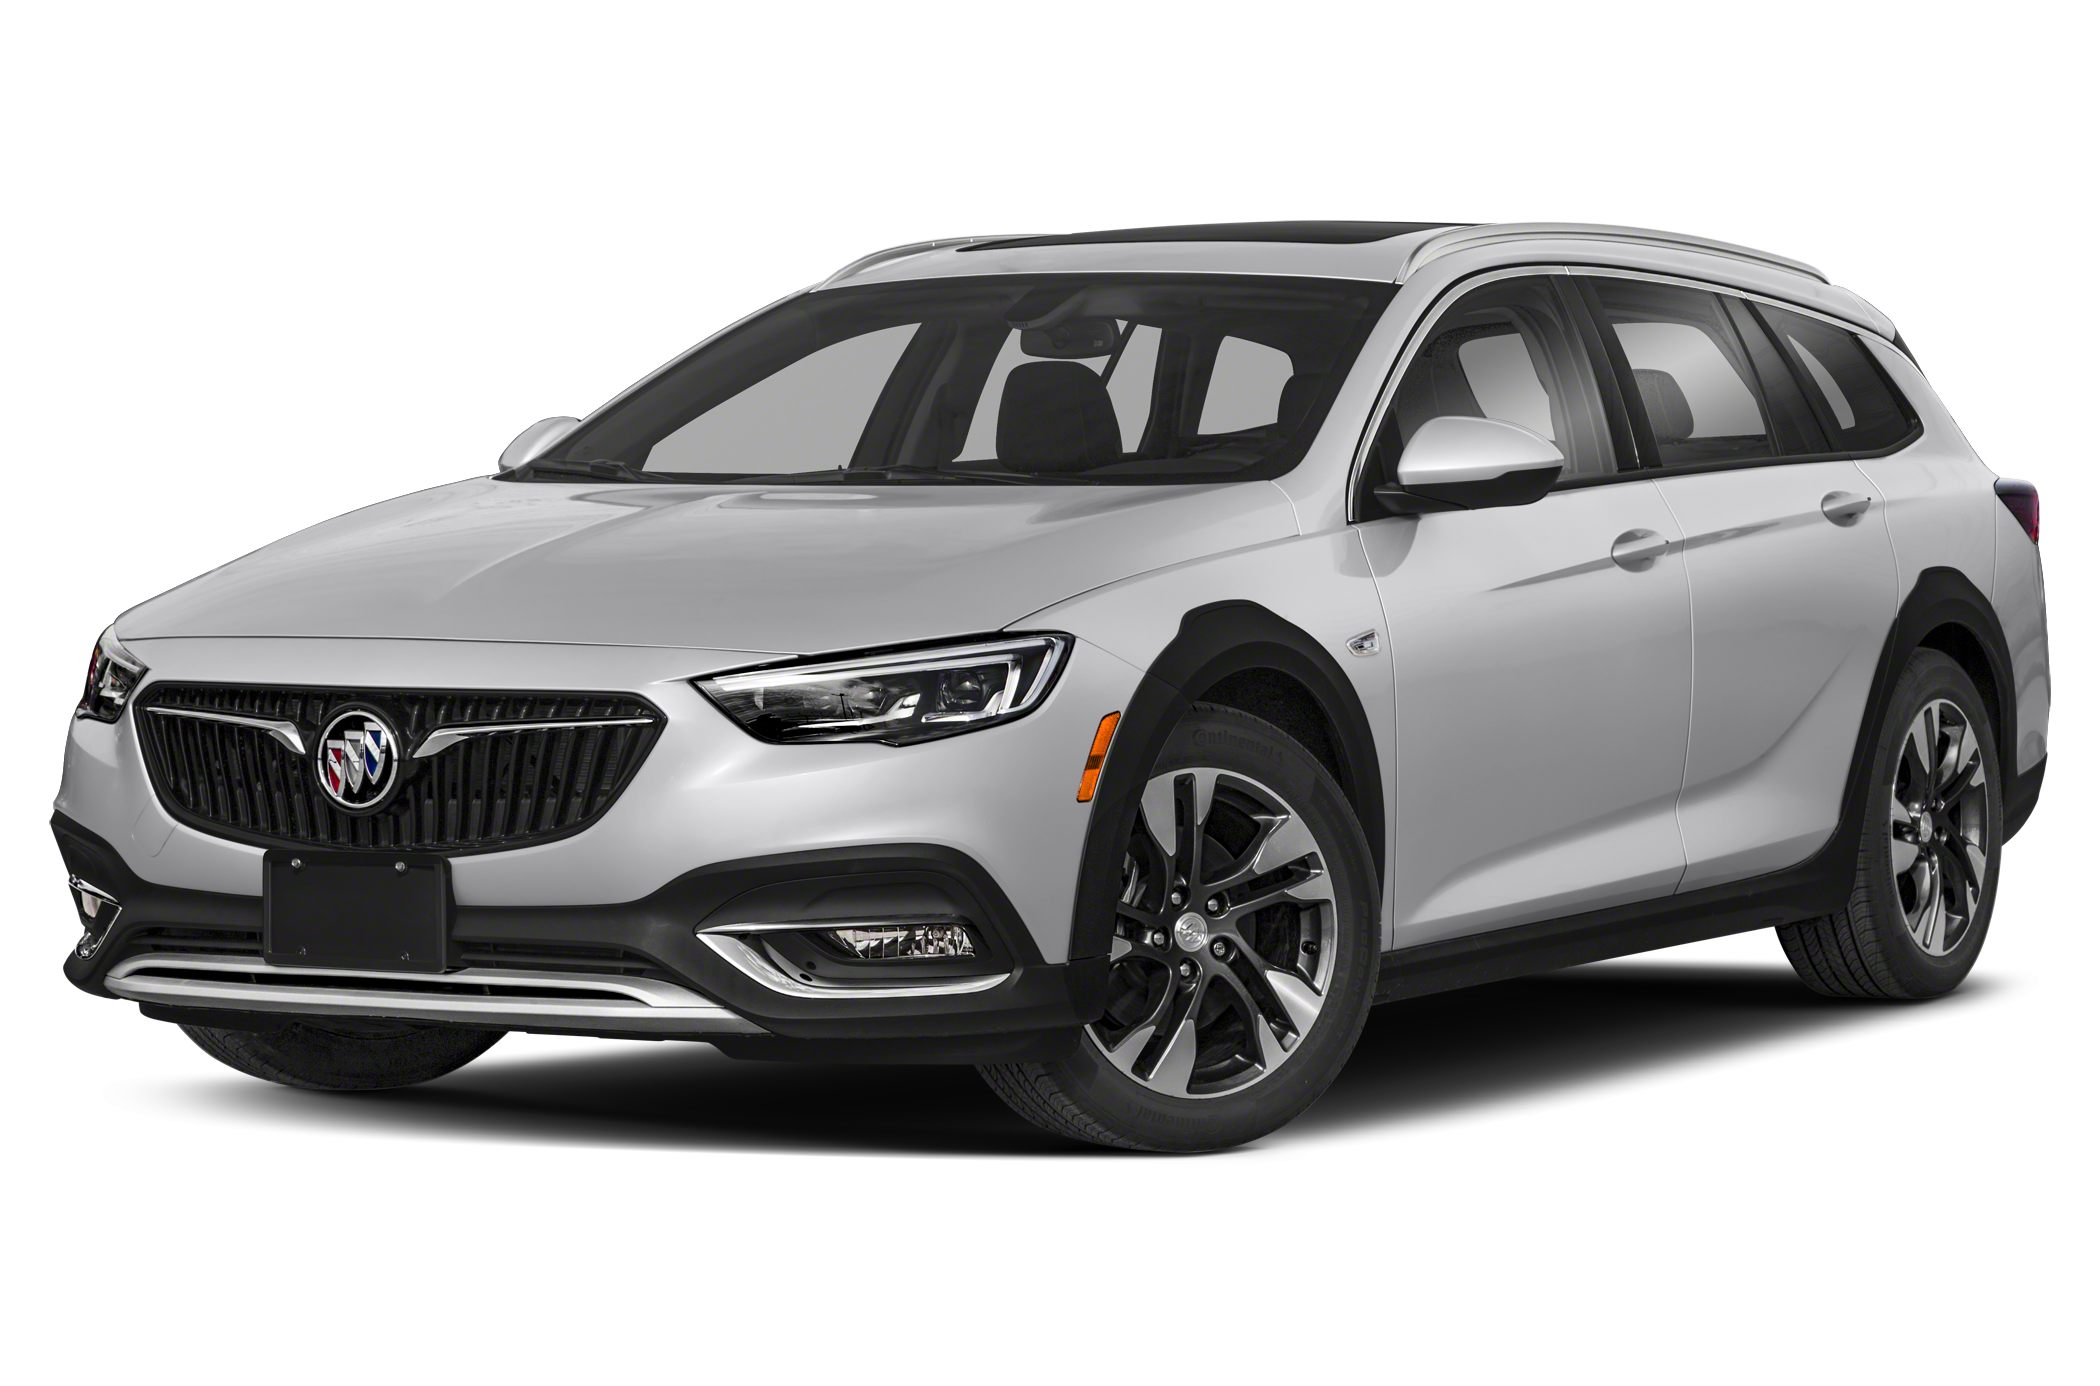 2018 Buick Regal Tourx Deals Prices Incentives Leases Overview